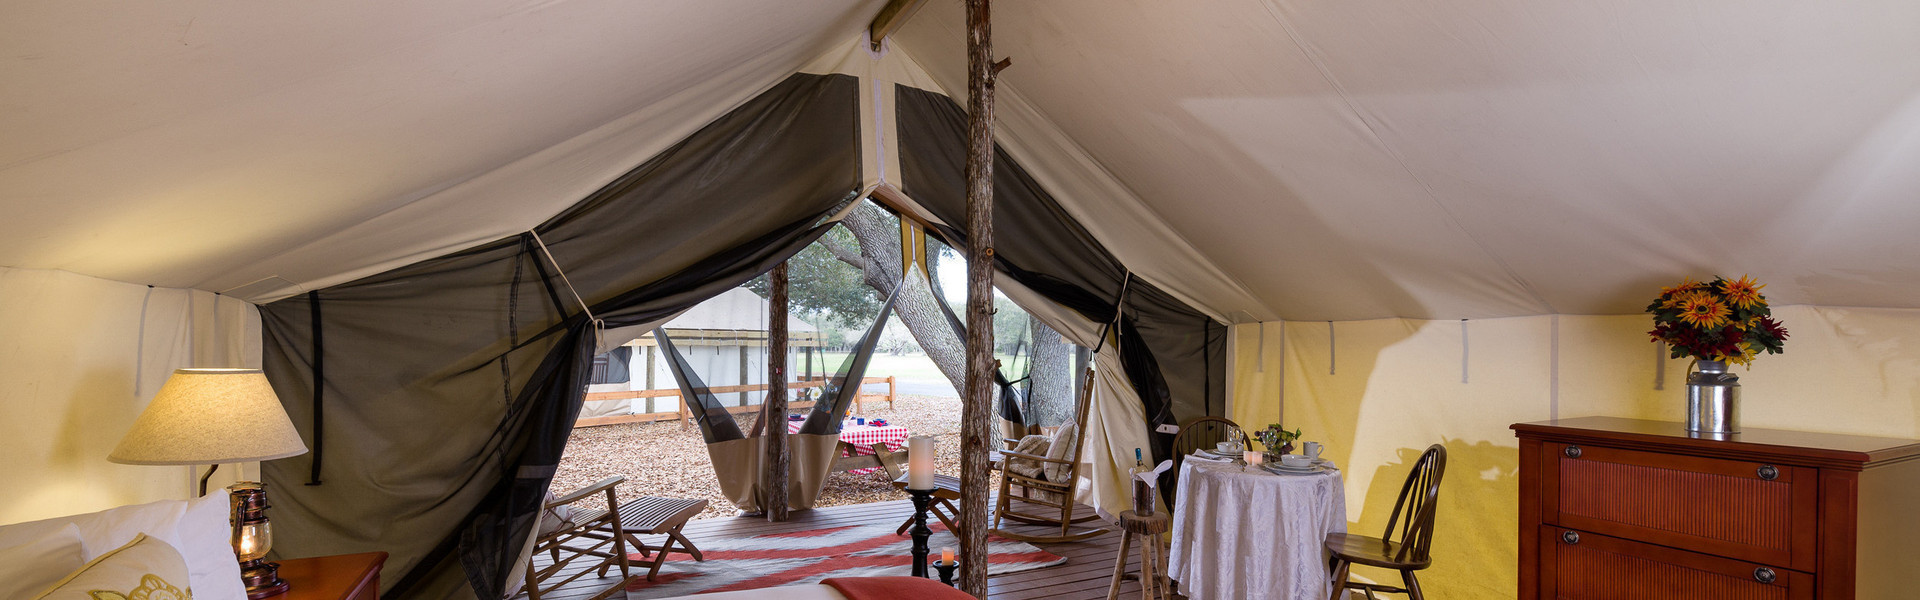 At Westgate River Ranch Resort & Rodeo in River Ranch, Florida, we feature a variety of cowboy-themed accommodations to suit your family's needs, including luxe teepees and Glamping.